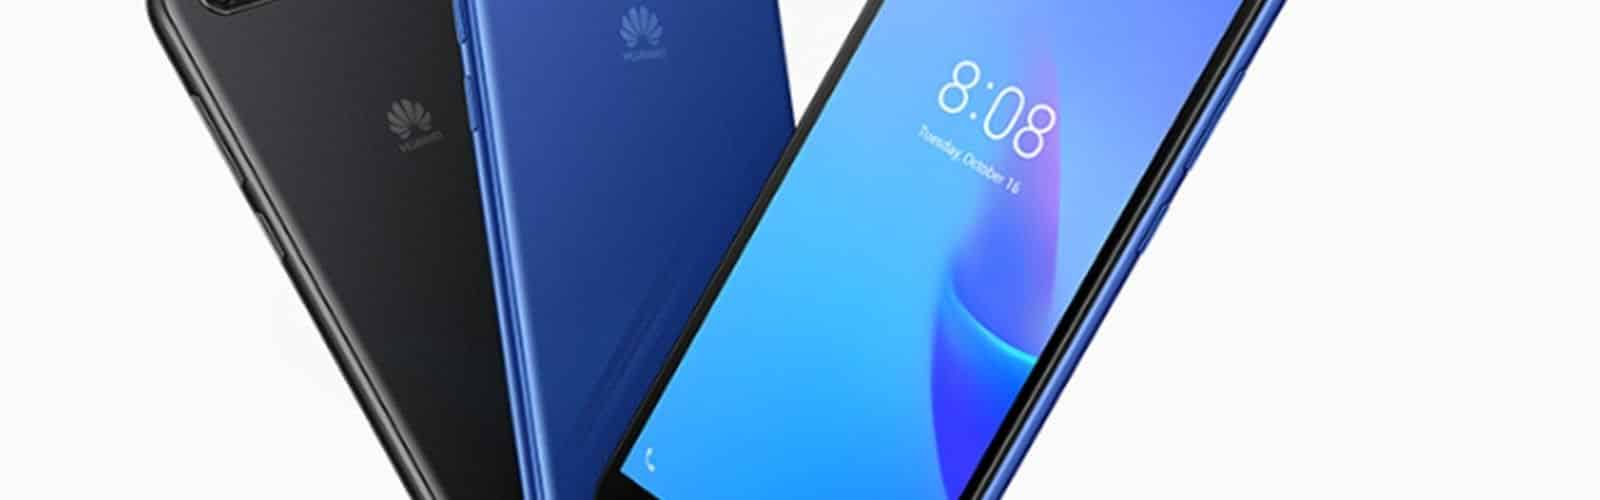 Huawei Y5 Lite Specs, Price and Reviews - FreeBrowsingLink